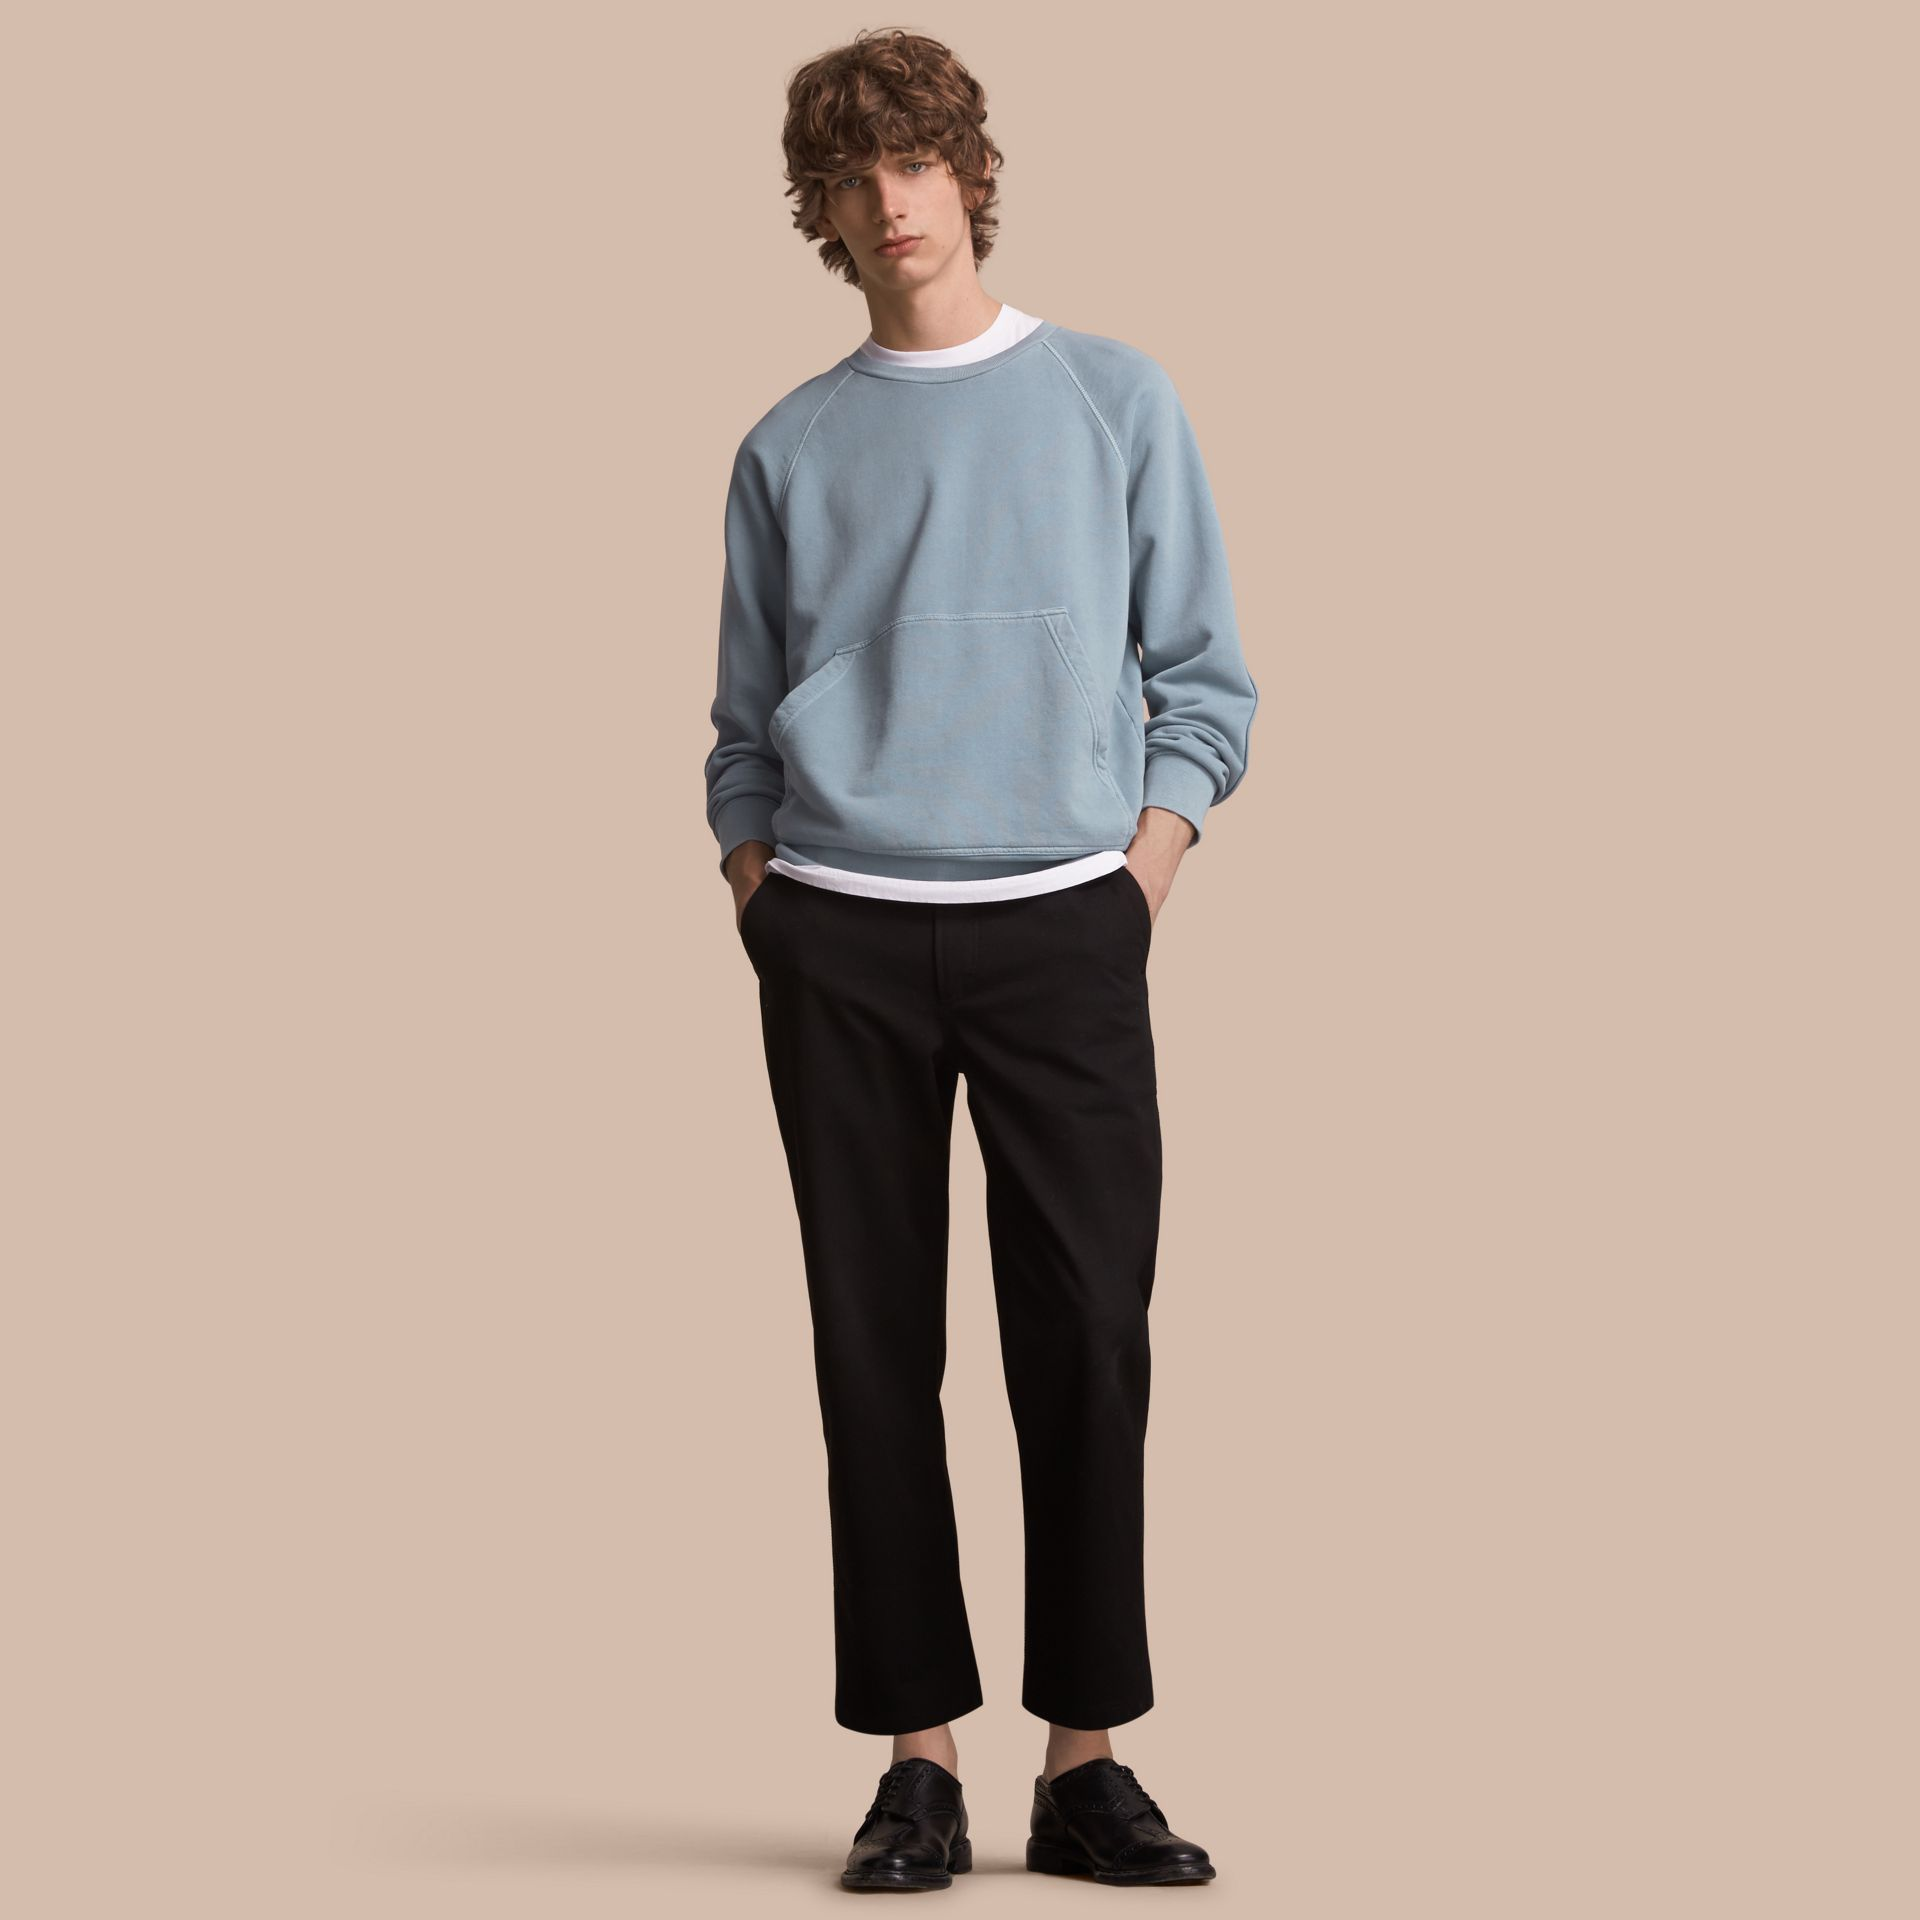 Unisex Pigment-dyed Cotton Oversize Sweatshirt in Dusty Blue - gallery image 1